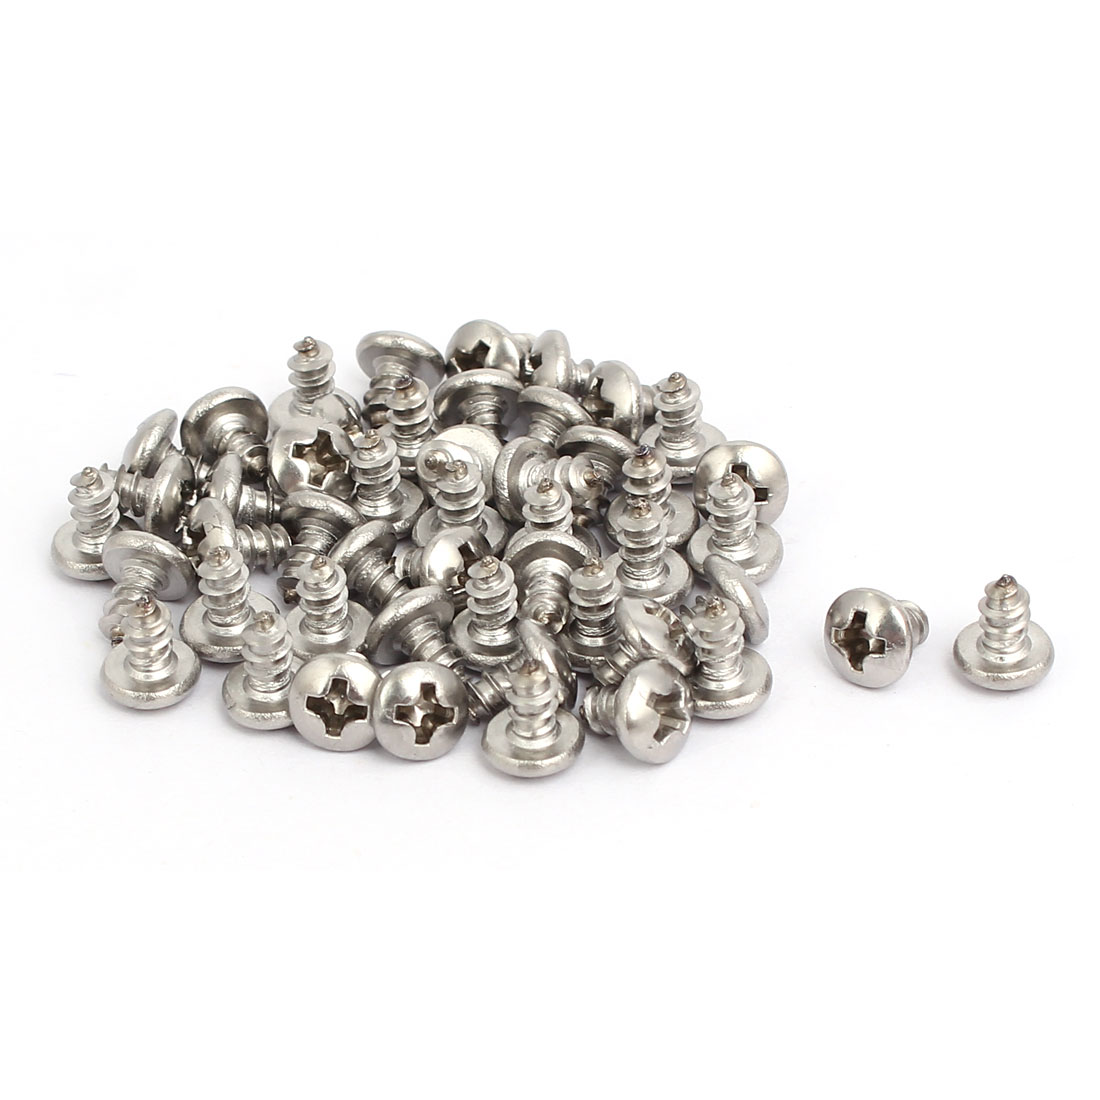 M3.5x6mm 304 Stainless Steel Phillips Round Pan Head Self Tapping Screws 50pcs